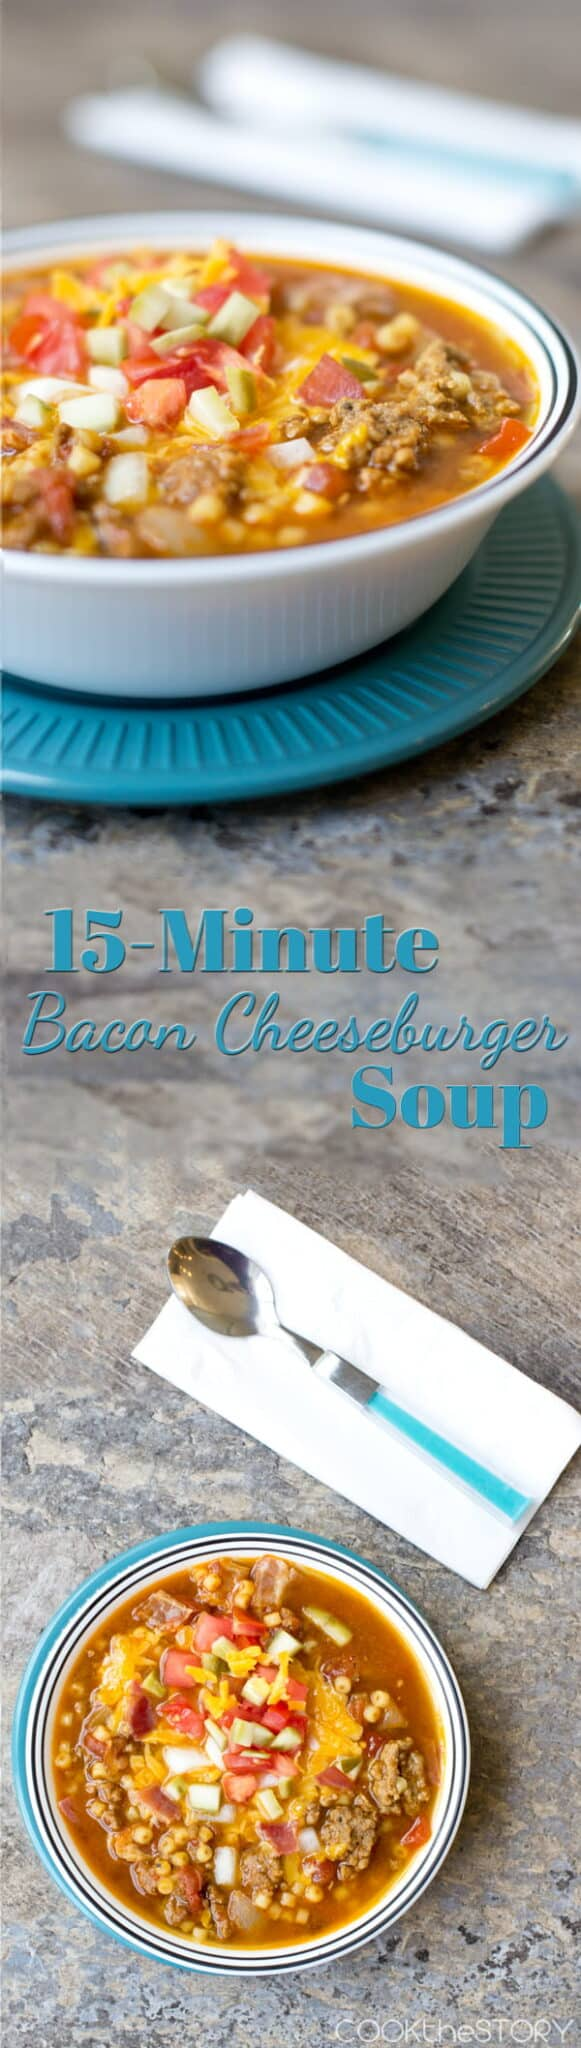 Bacon Cheeseburger Soup - This homemade soup recipe is full of flavor and can be on the table in just 15 minutes!